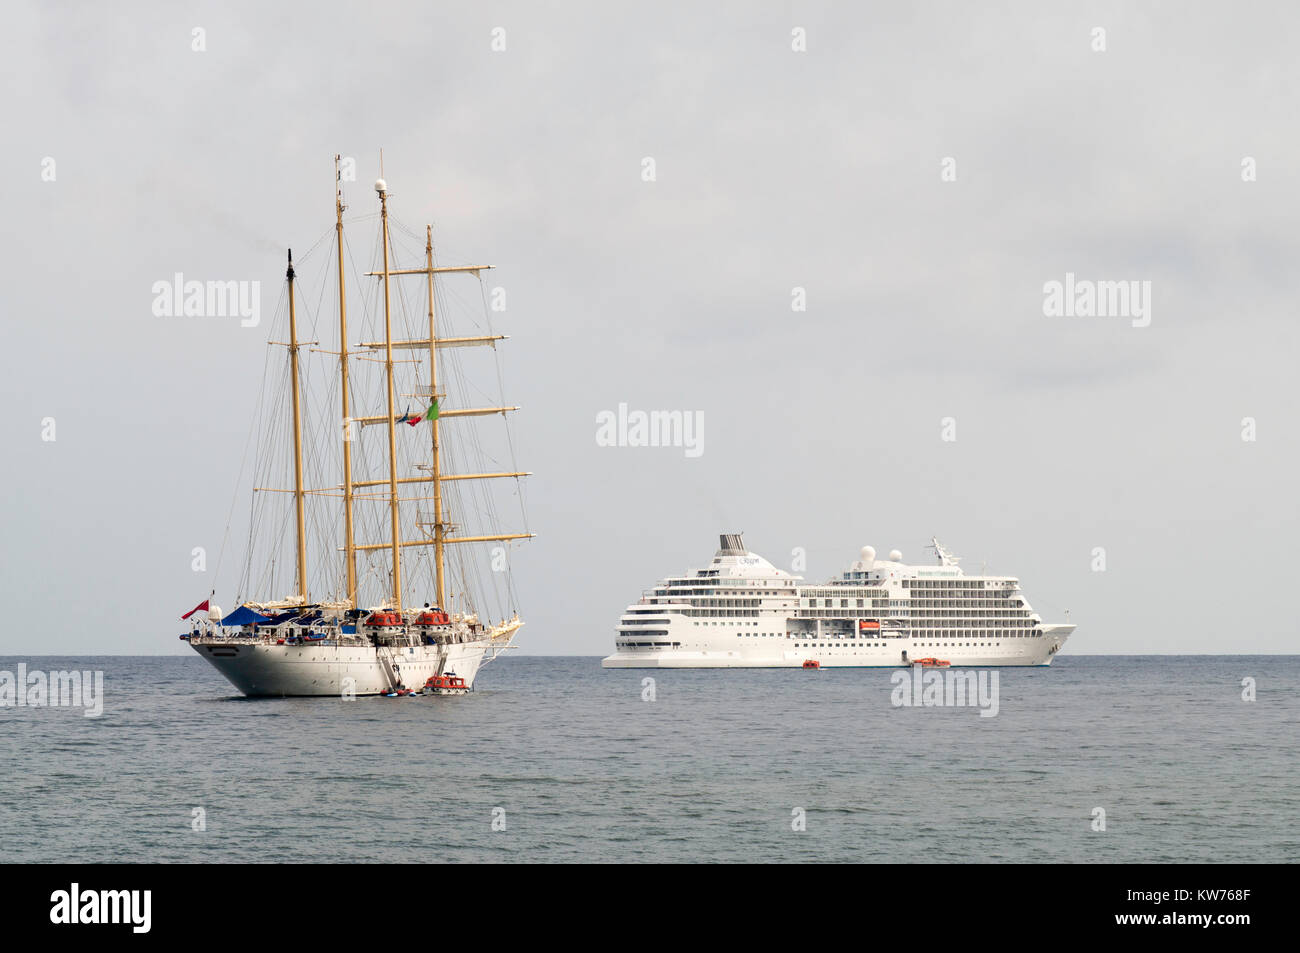 Star Clippers four masted barquentine and Seven Seas Navigator lying off Giardini Naxos, Sicily, Europe - Stock Image